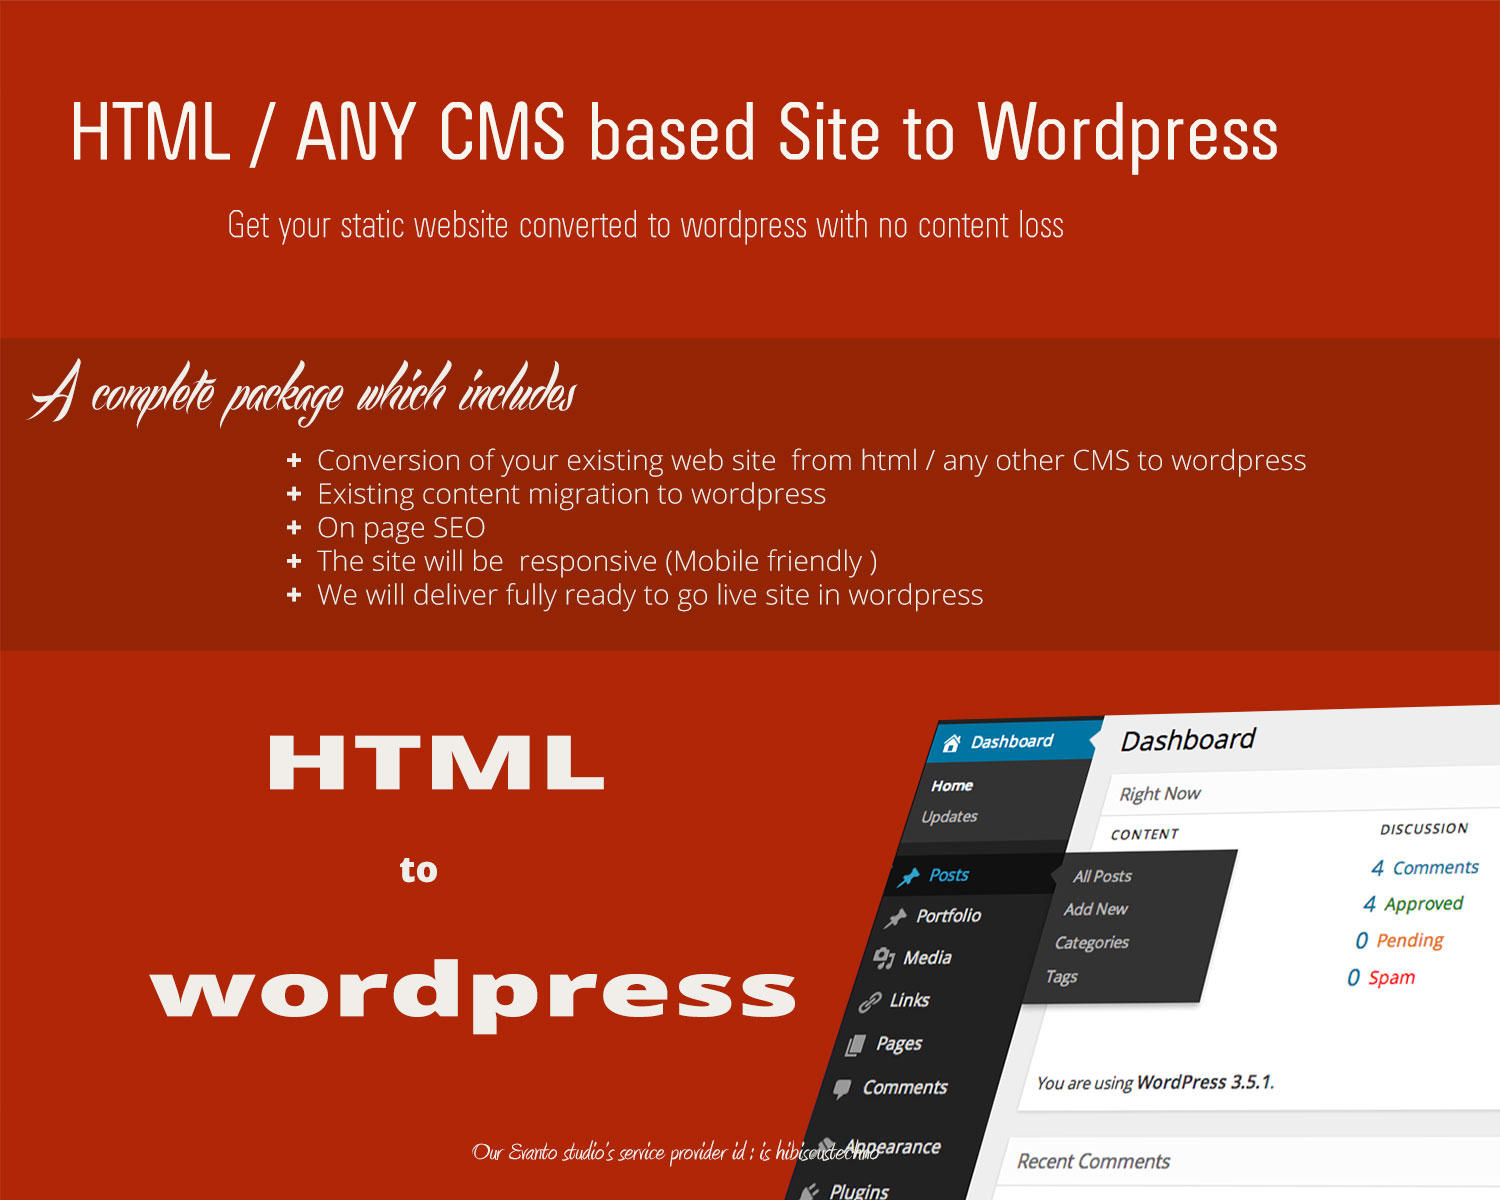 Convert HTML / CMS  website to WordPress (Mobile friendly site) by hibiscustechno - 83462